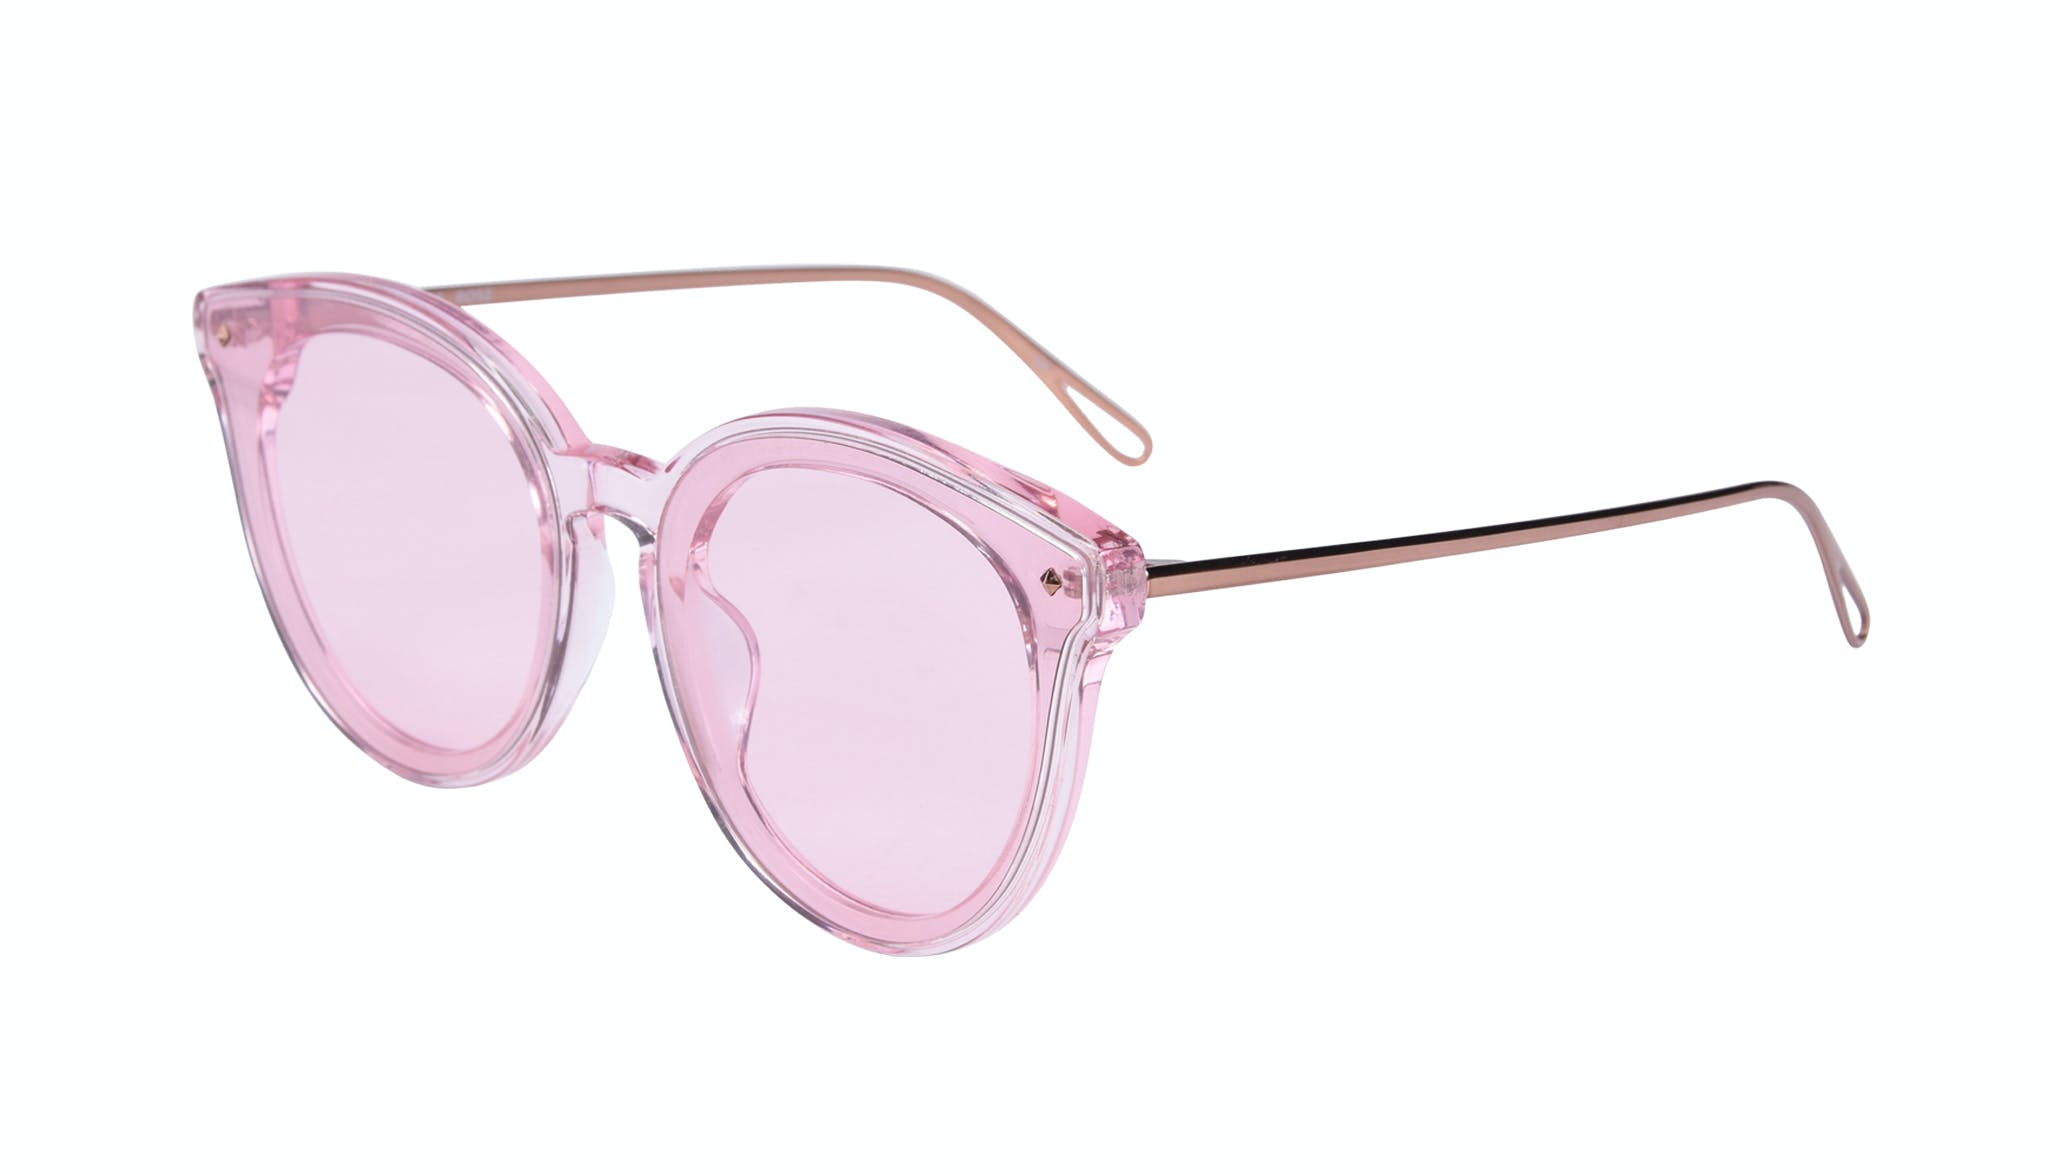 Affordable Fashion Glasses Cat Eye Sunglasses Women Icone Rose Tilt